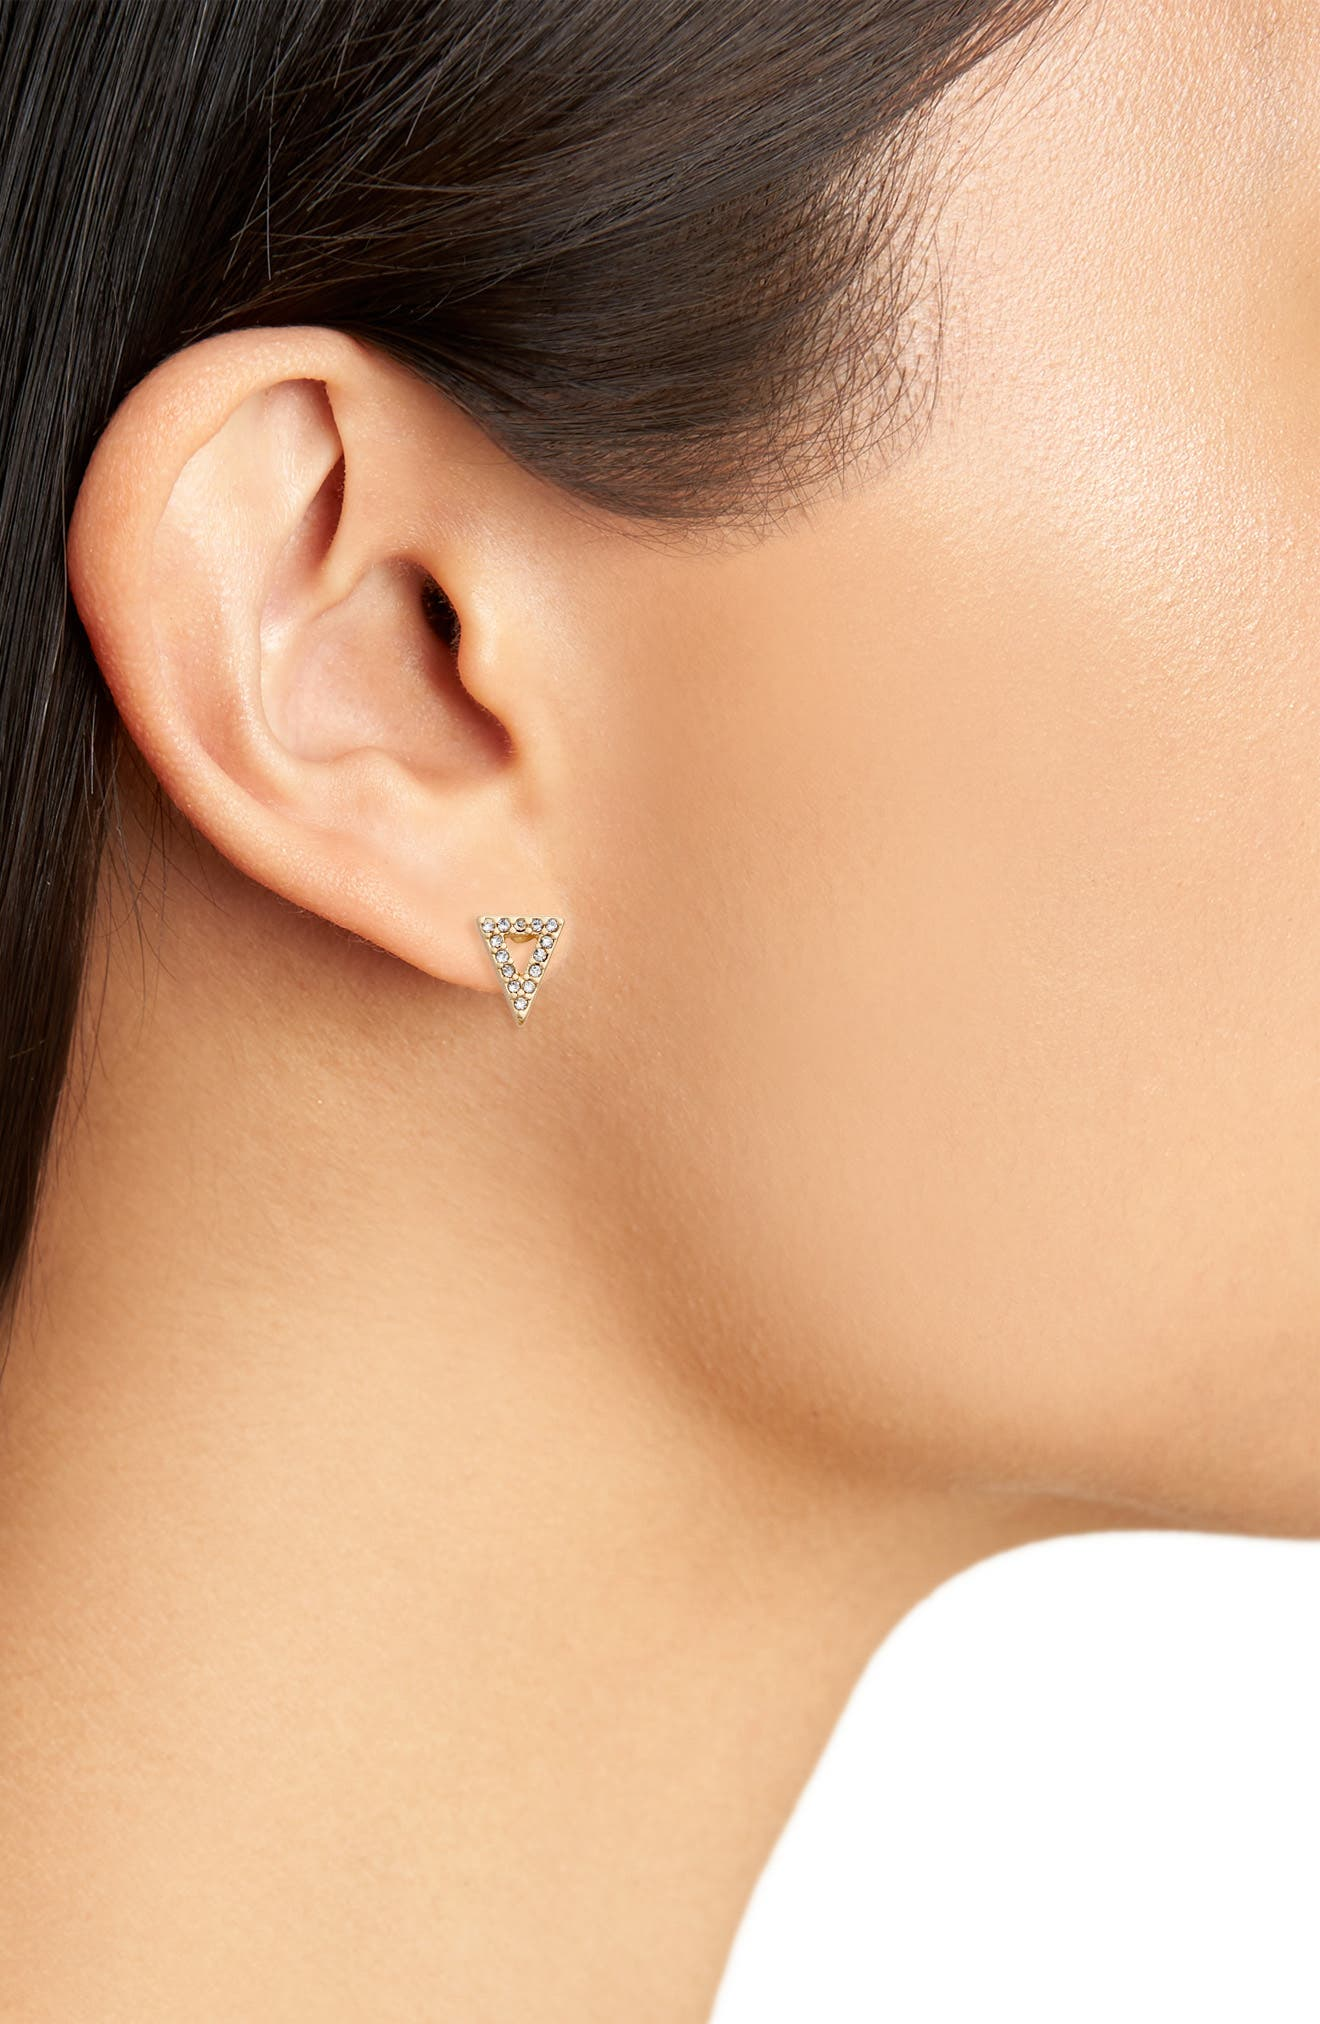 Set of 3 Triangle Stud Earrings,                             Alternate thumbnail 2, color,                             Clear- Gold